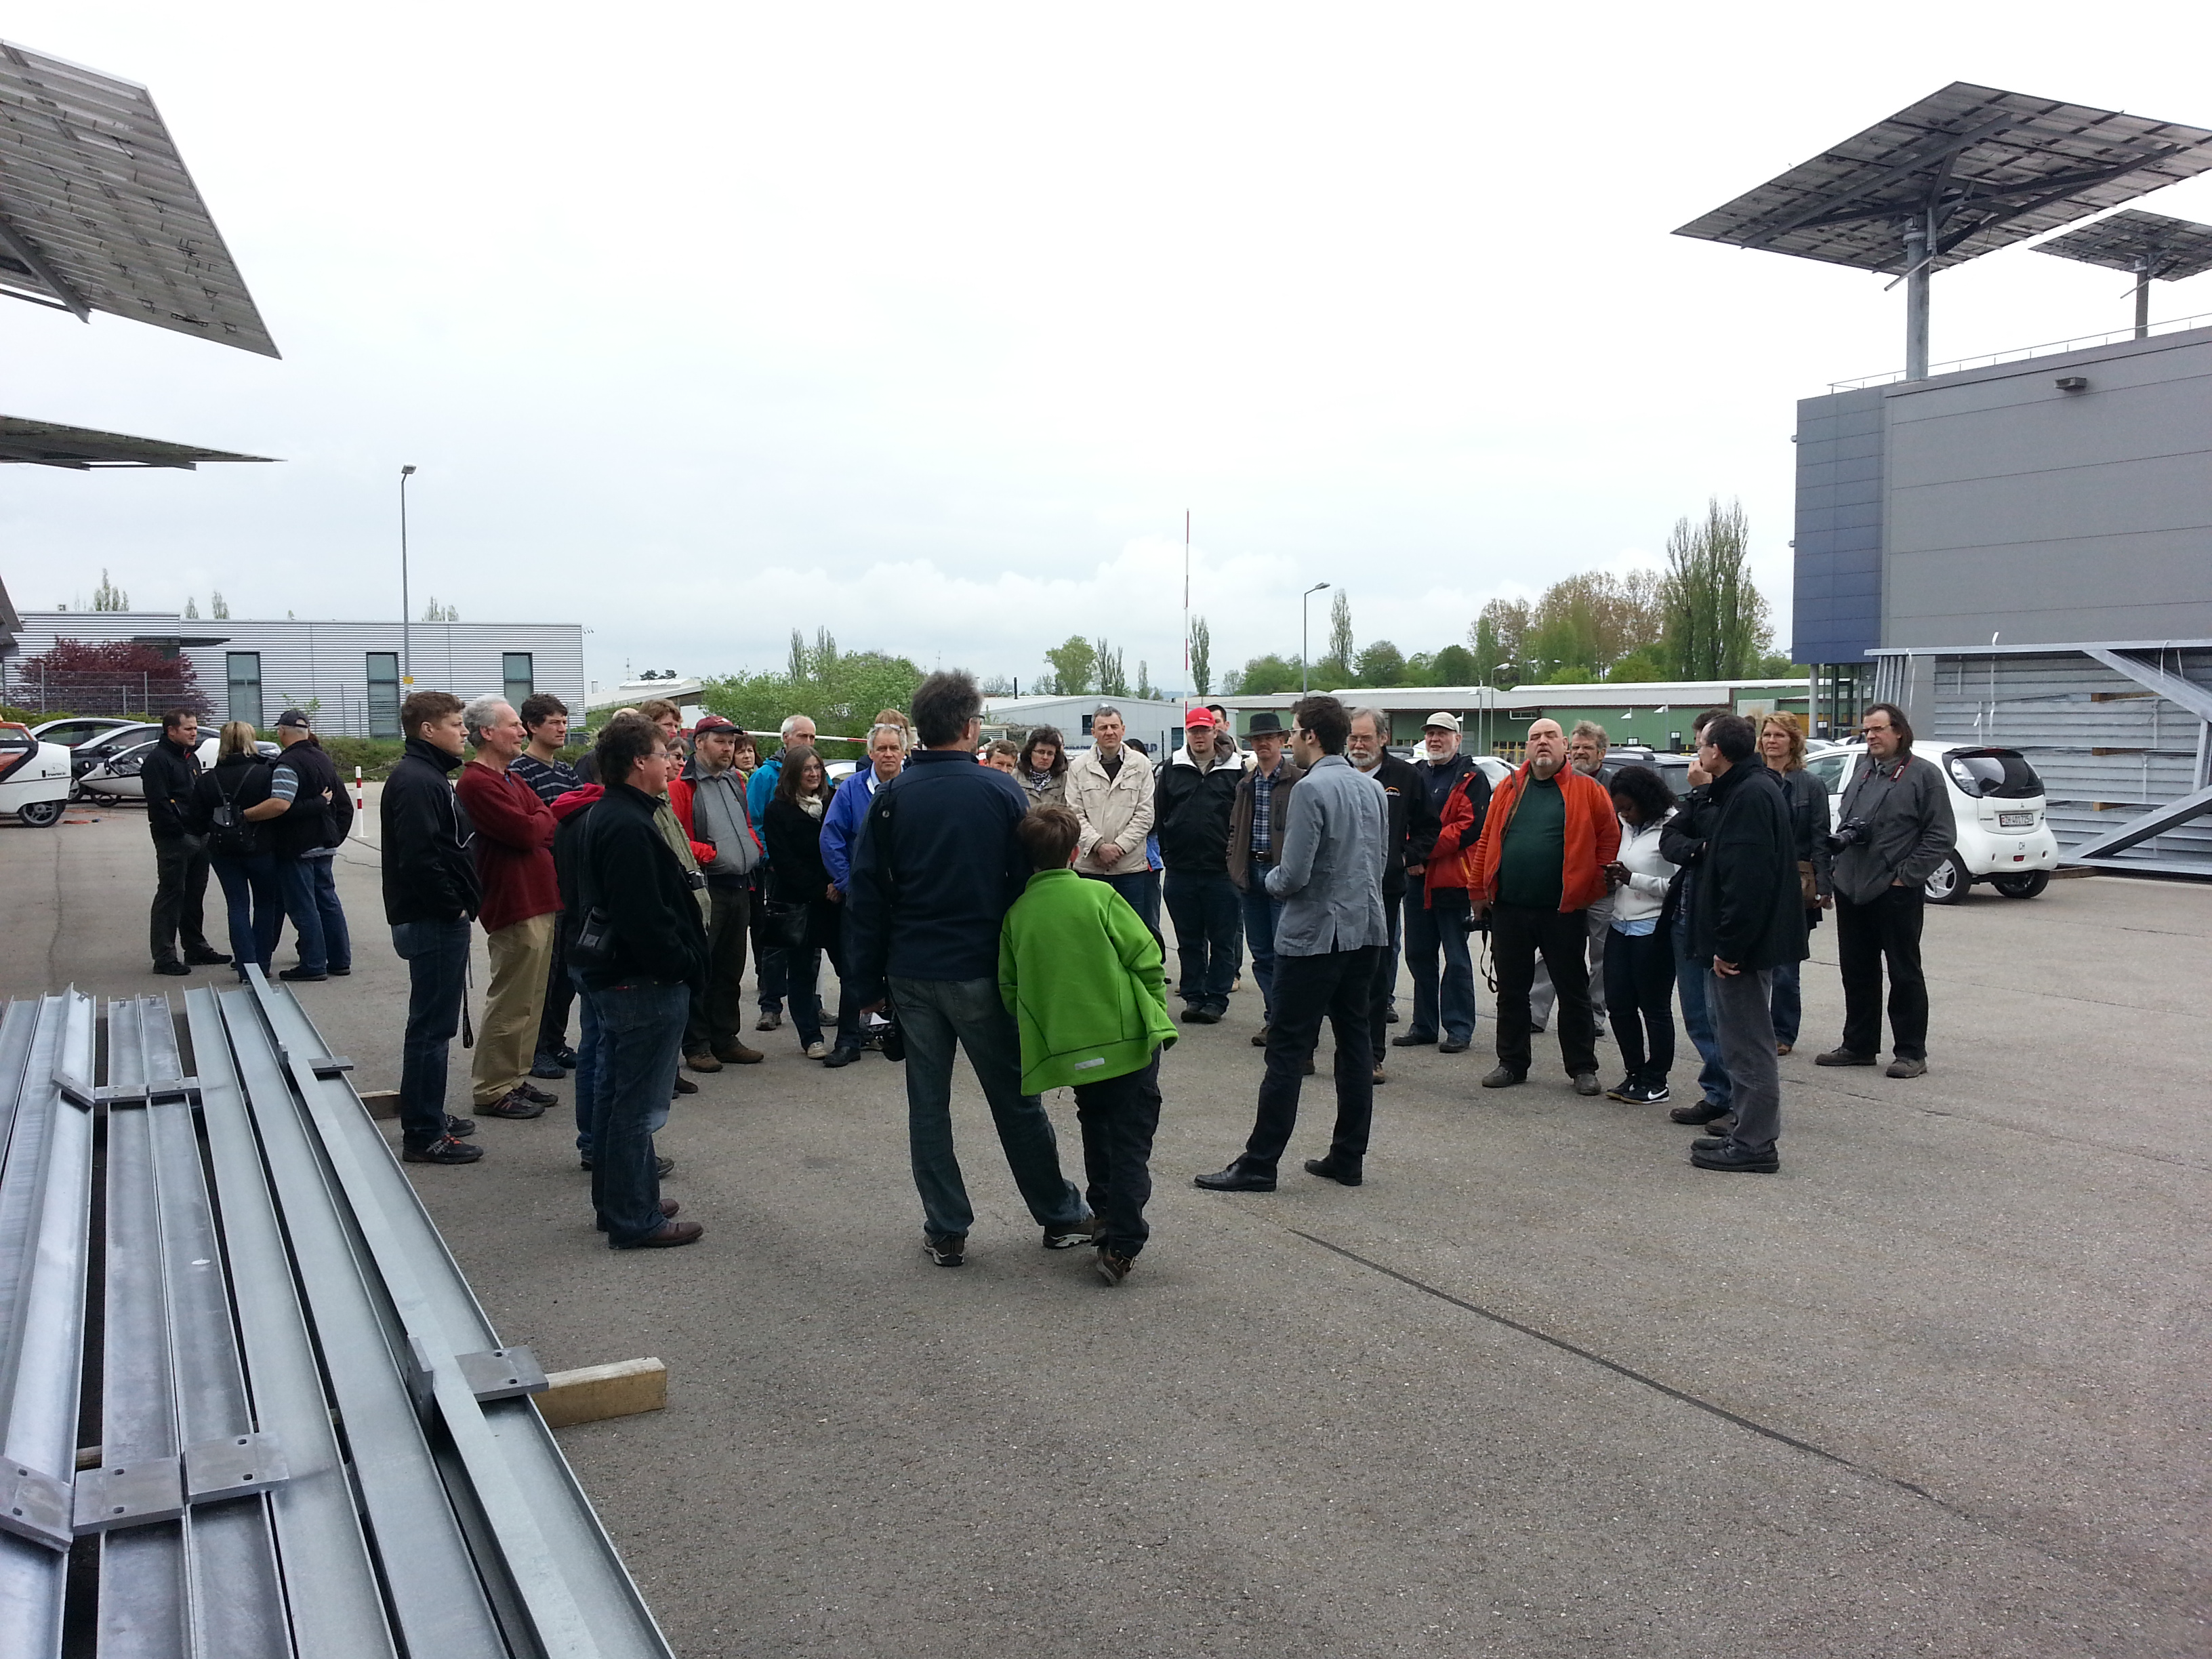 the TWIKE crowd slowly gathering on a grey morning